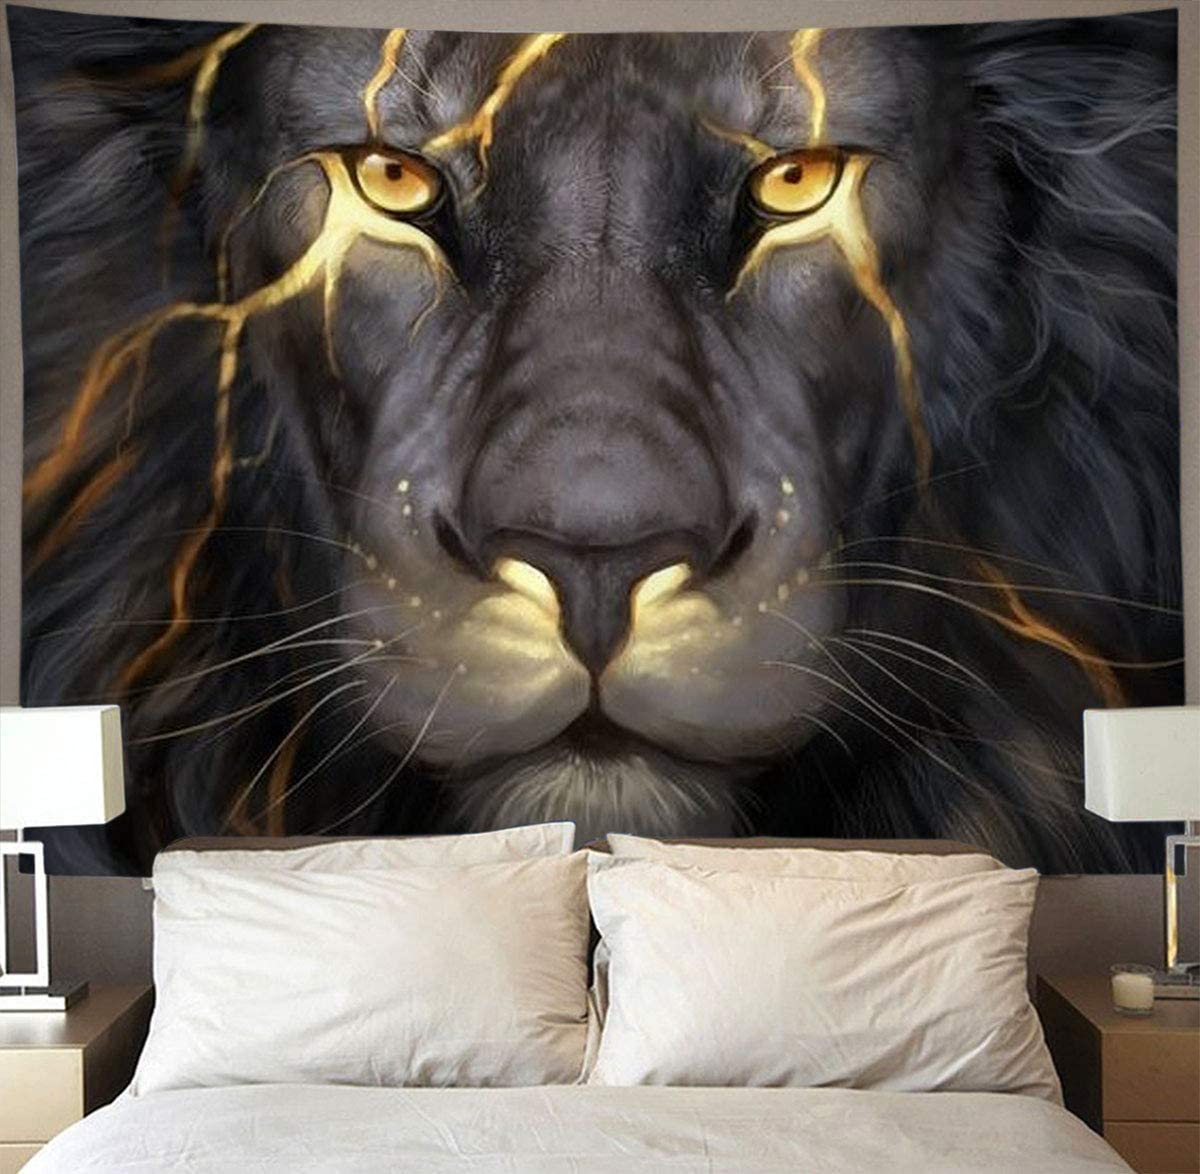 NiYoung Golden Cool Lion King paninting Wall Tapestry Hippie Art Tapestry Wall Hanging Home Decor Extra Large tablecloths 40x60 inches for Bedroom Living Room Dorm Room